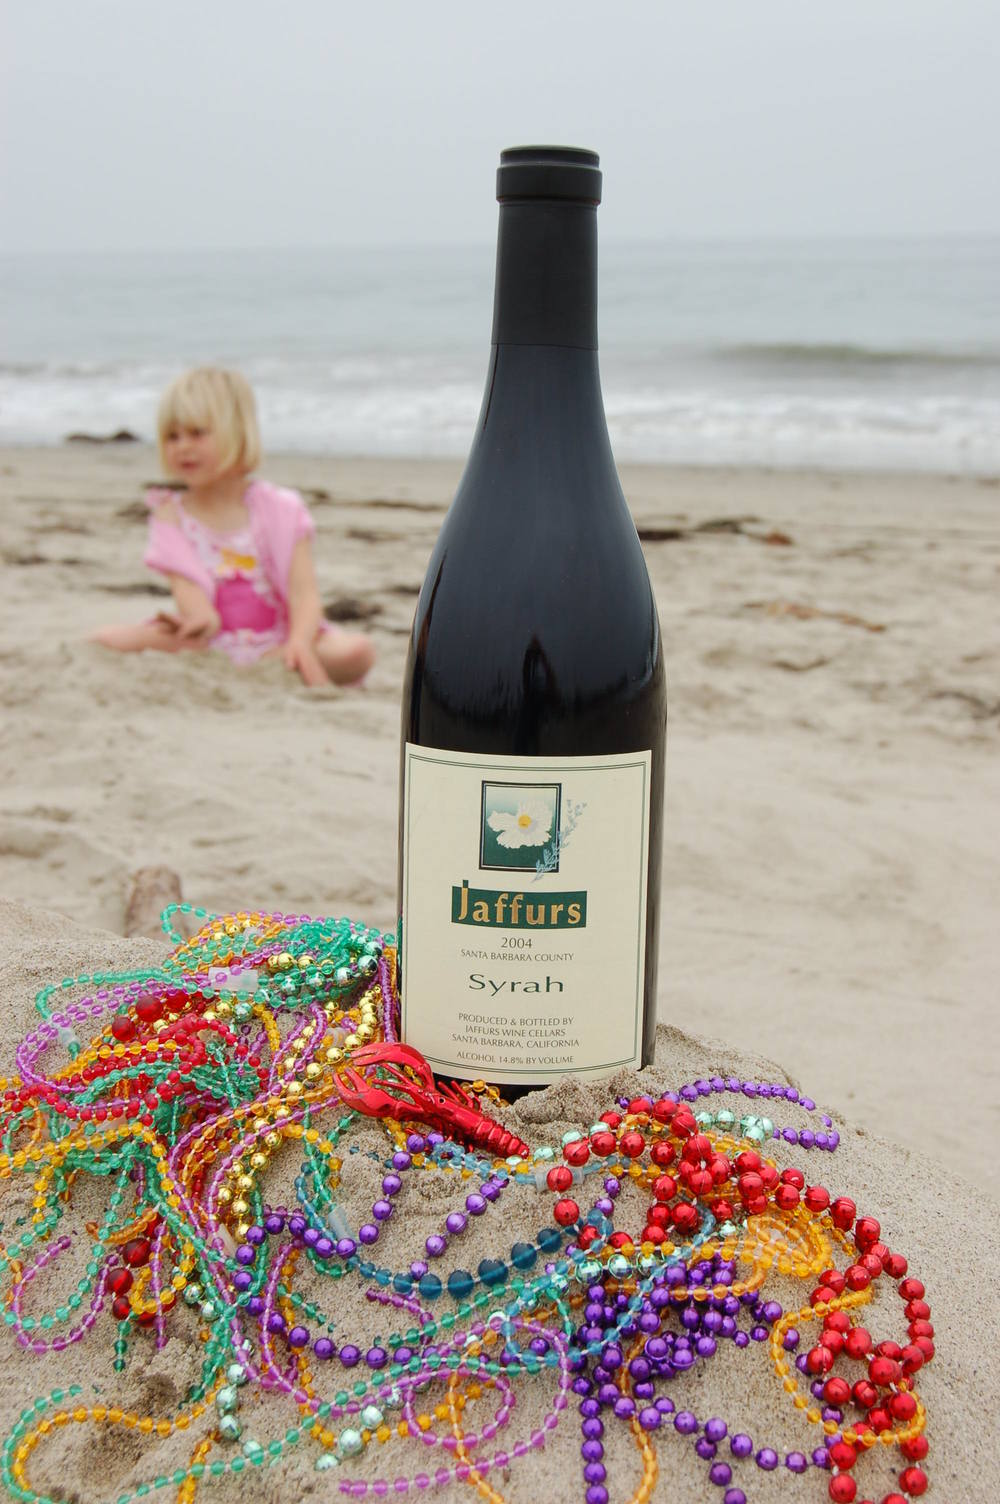 syrah bottle on beach.JPG